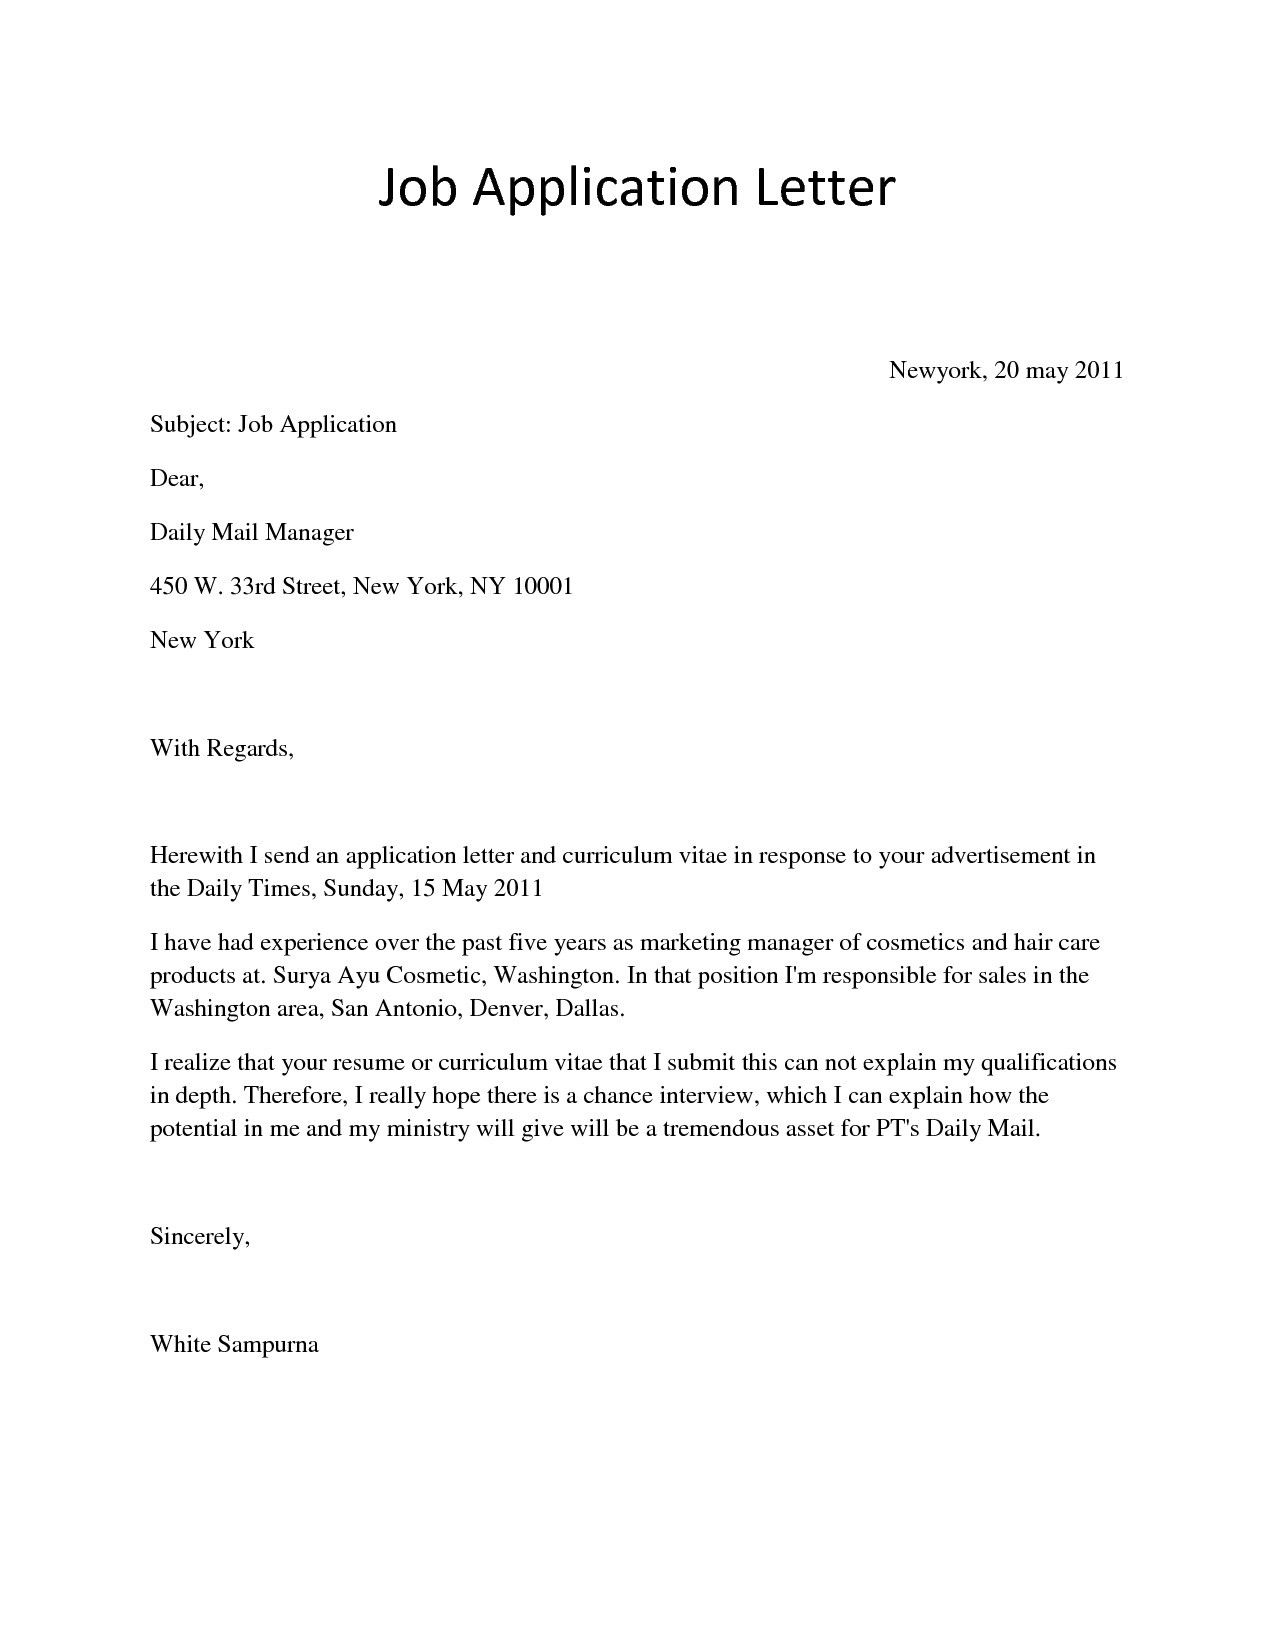 Cover Letter Template Ngo Cover Coverlettertemplate Letter Template Simple Job Application Letter Simple Application Letter Job Cover Letter